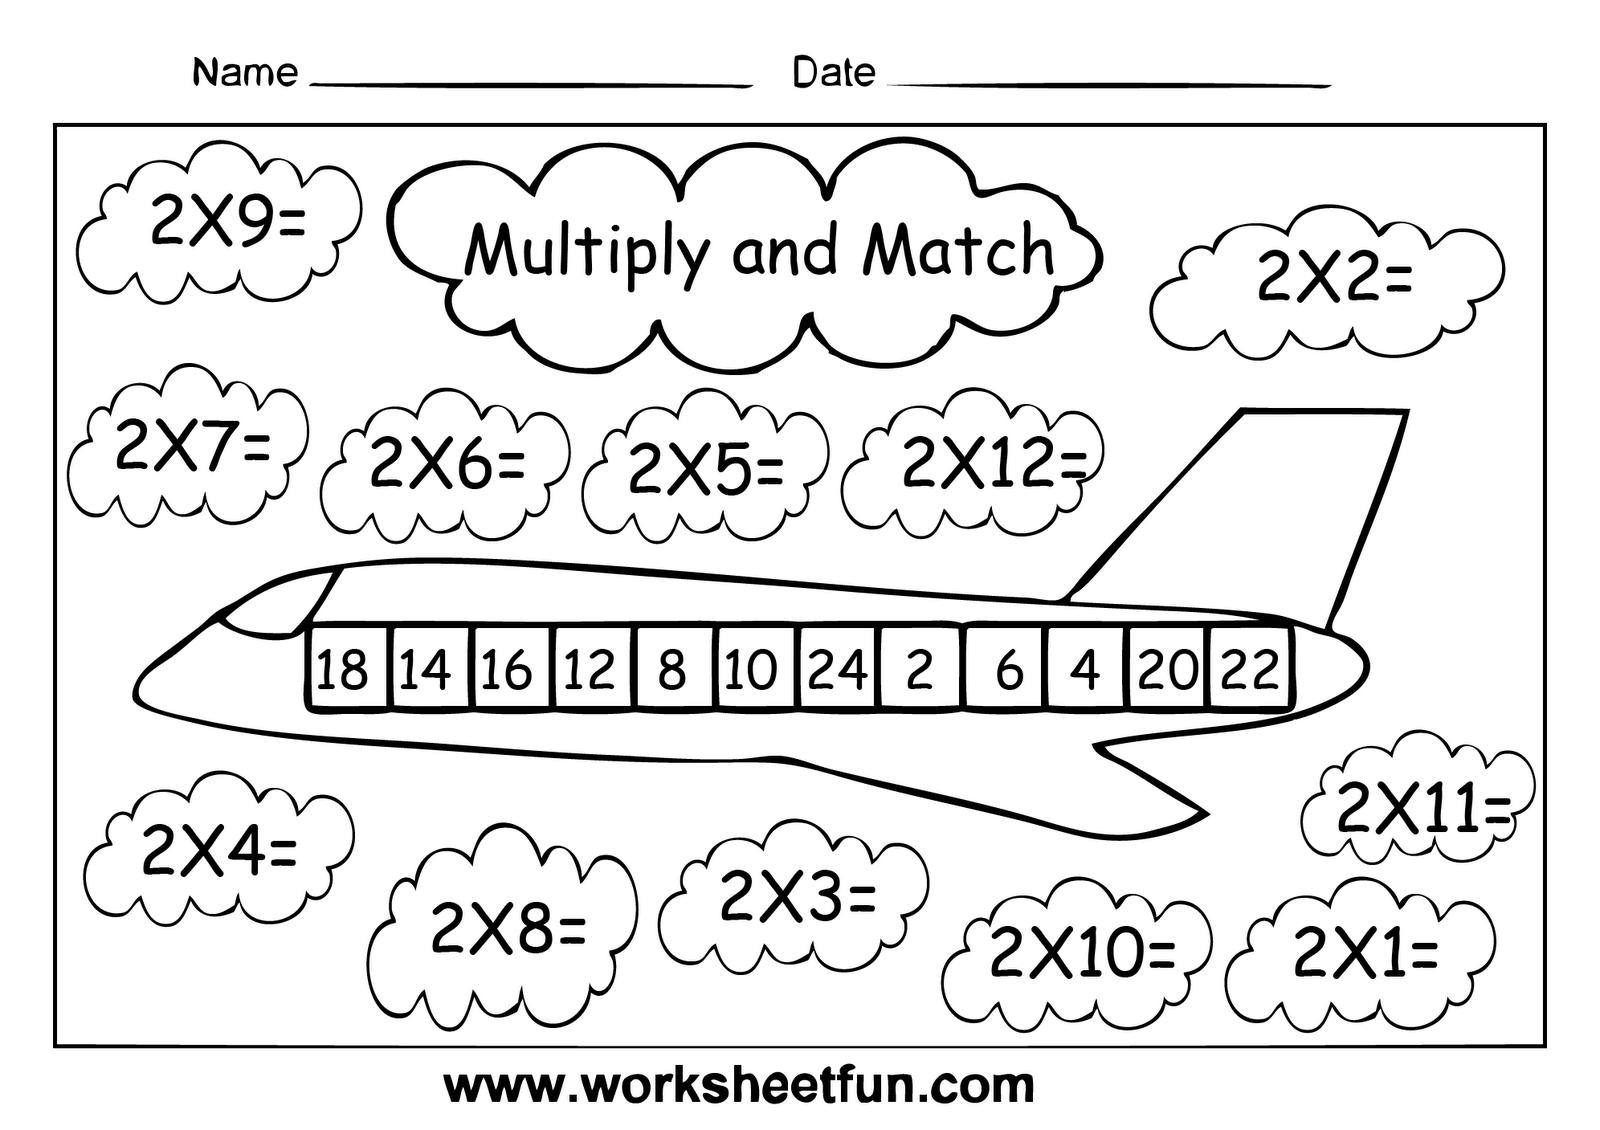 Multiplication And Division Worksheets For Class 5